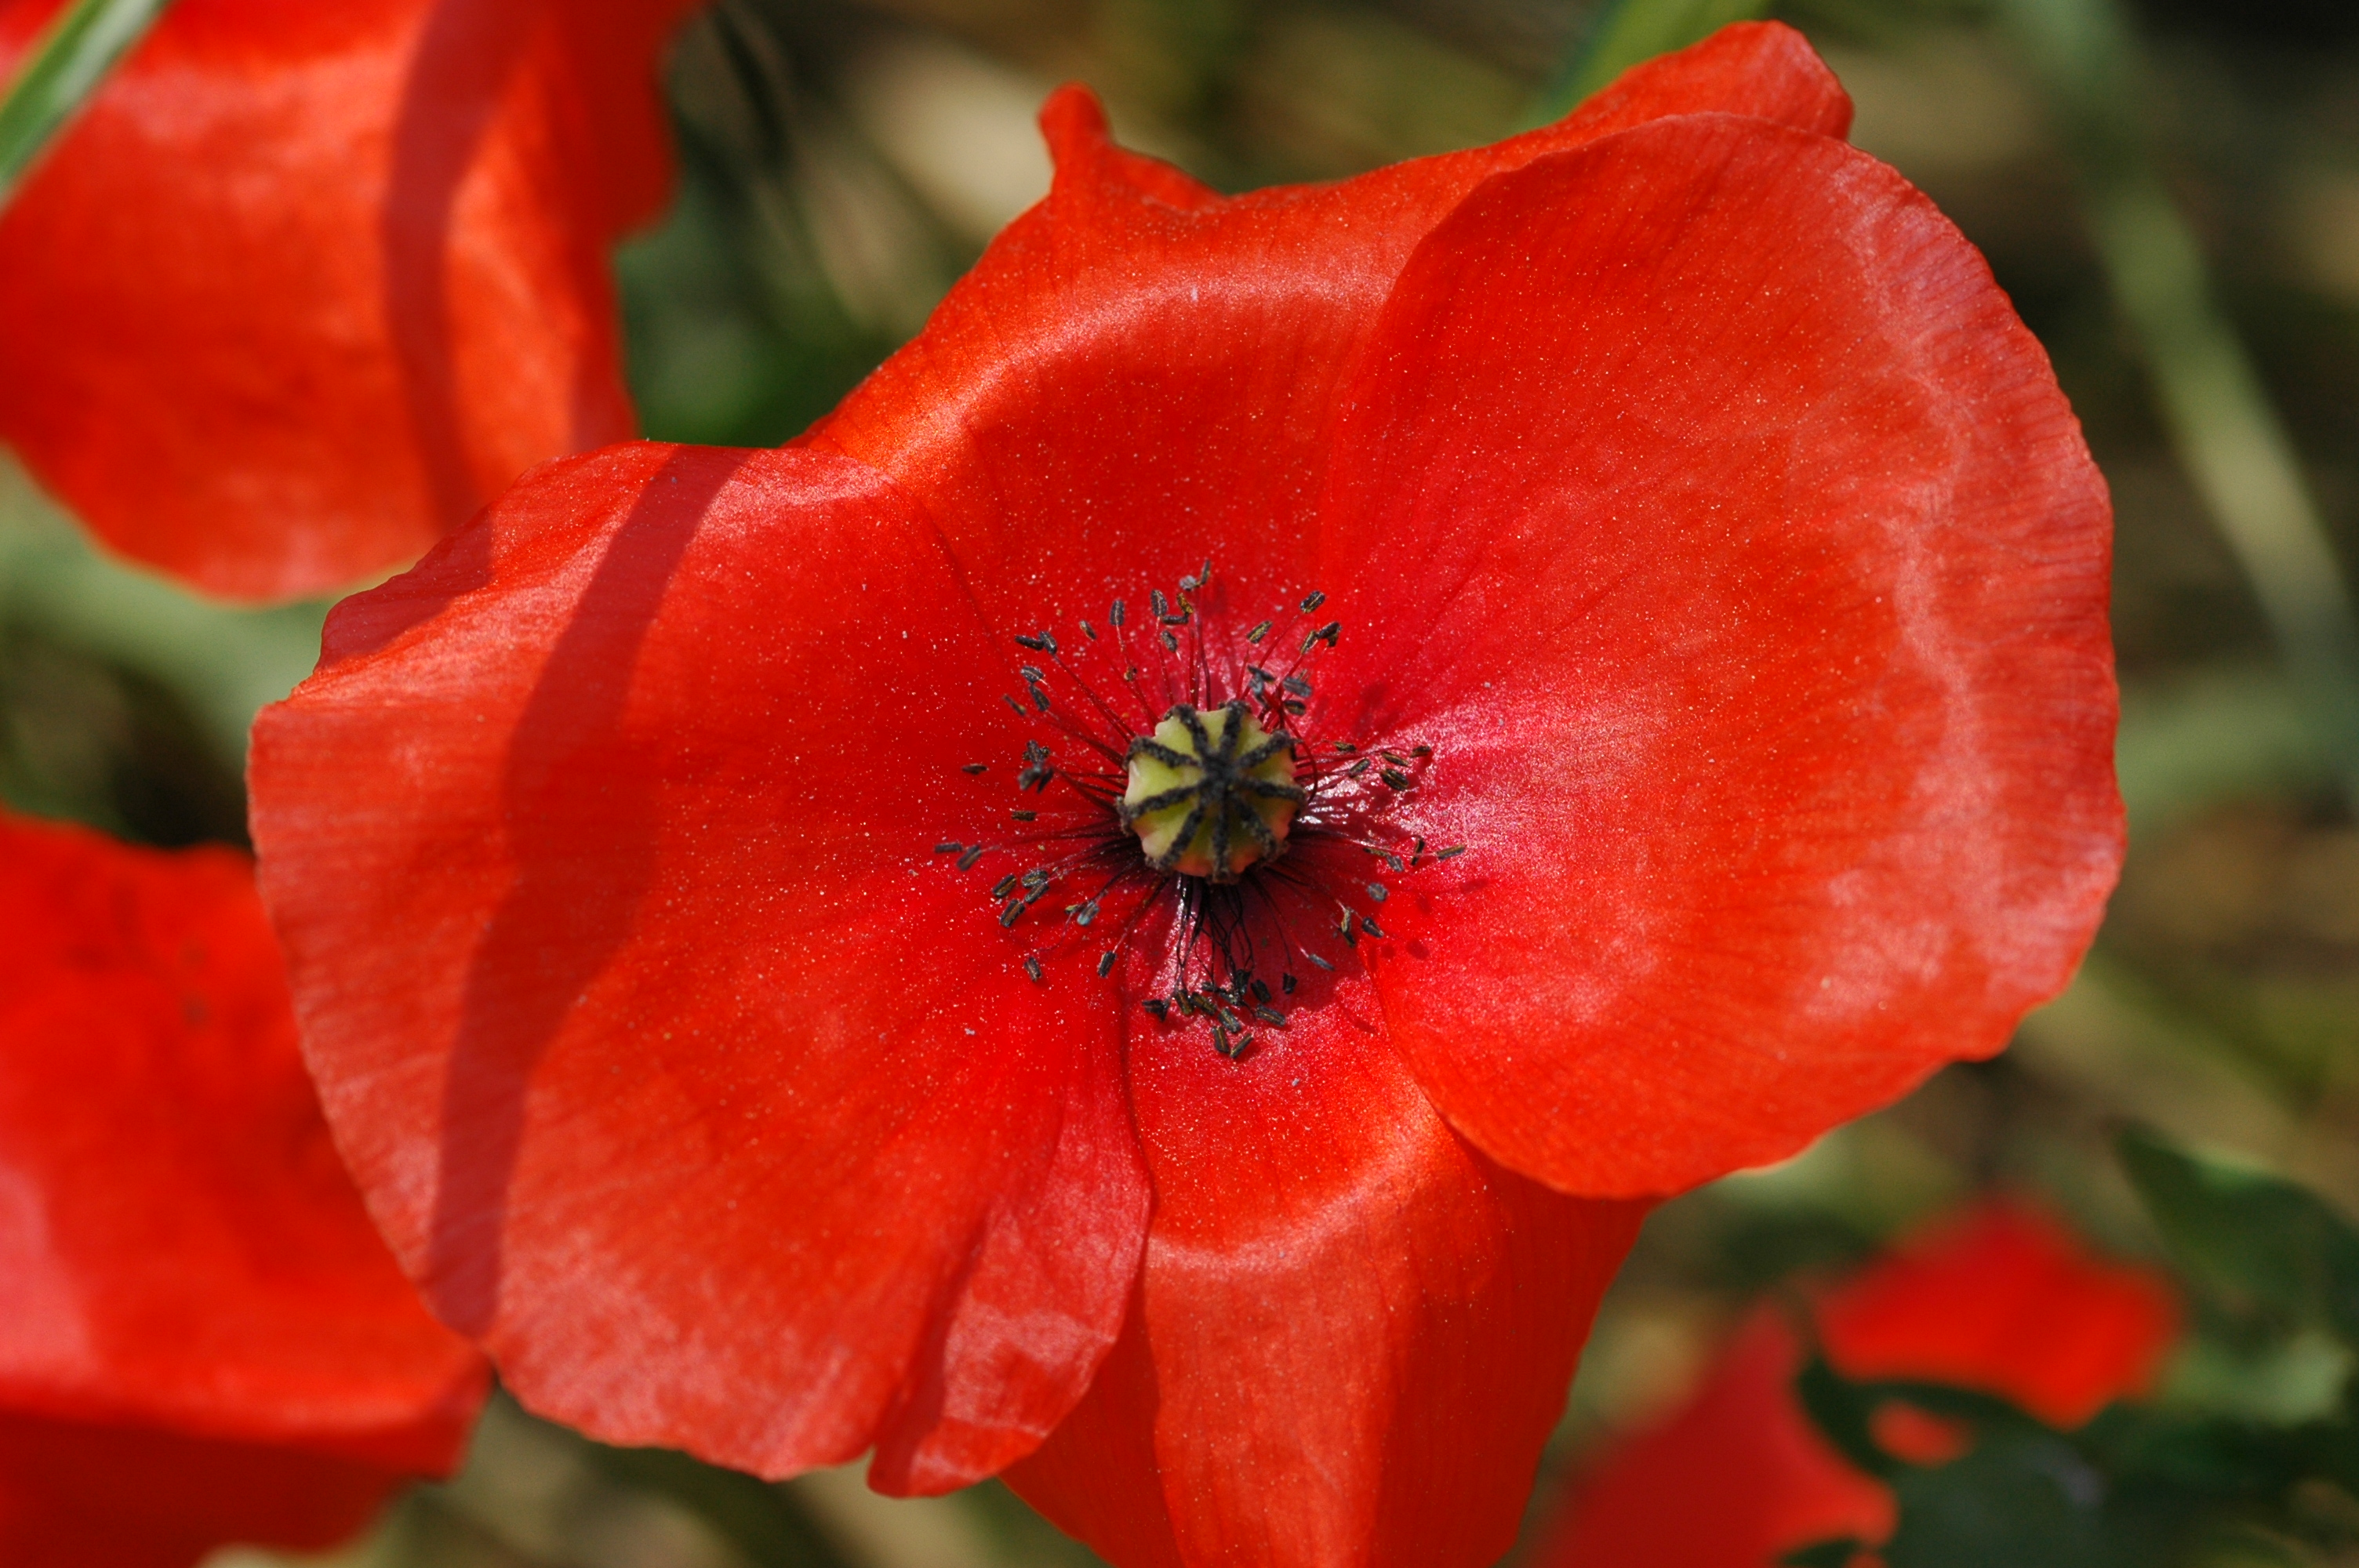 file 2010 06 29 32 red poppy klatsch mohn papaver rhoeas jpg wikimedia commons. Black Bedroom Furniture Sets. Home Design Ideas